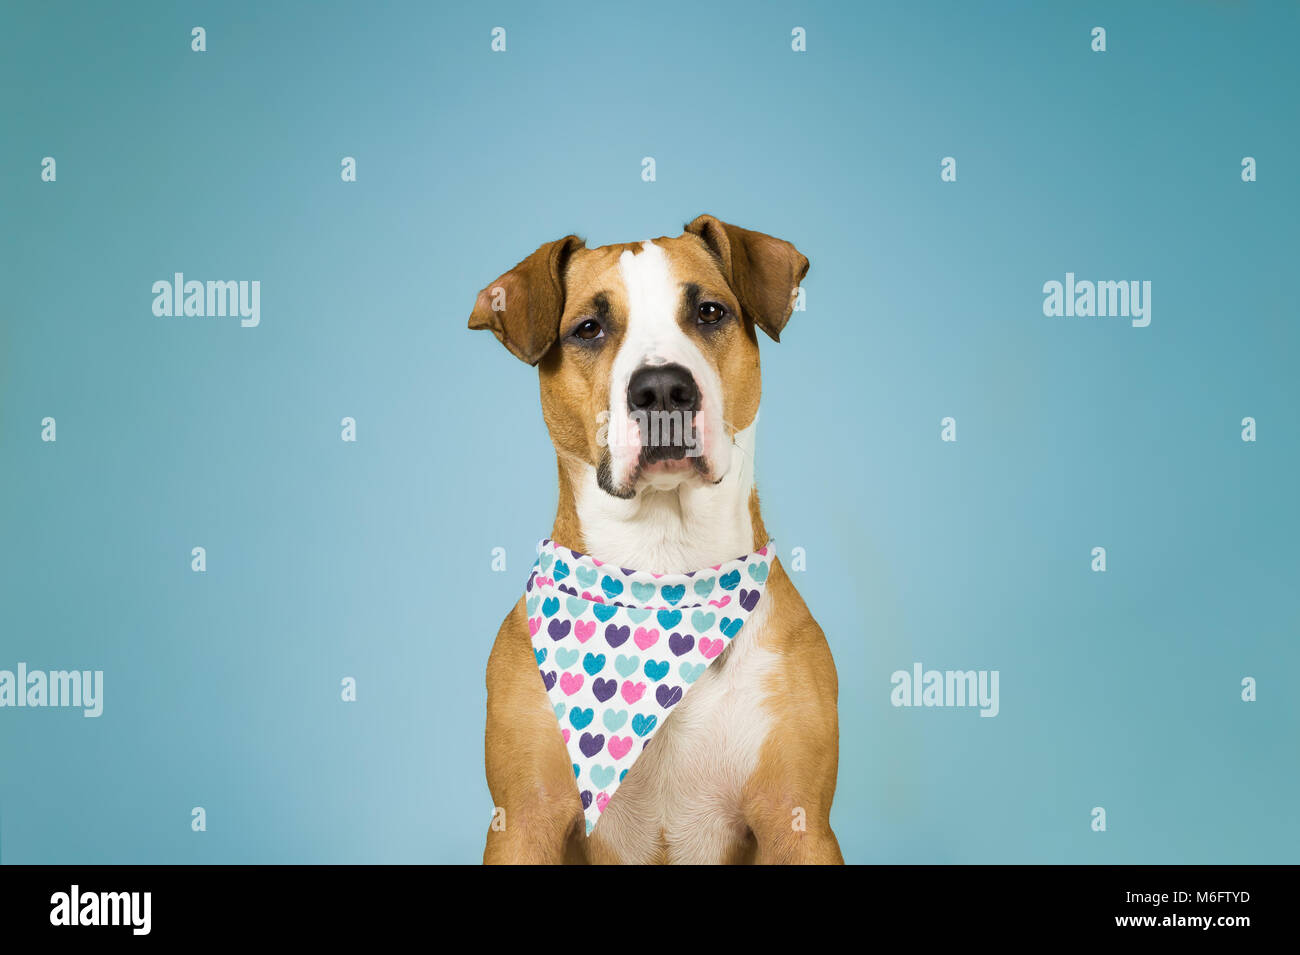 Cute staffordshire terrier dog in bandana with hearts. Young pitbull puppy sits in light blue colorful  backgraund - Stock Image